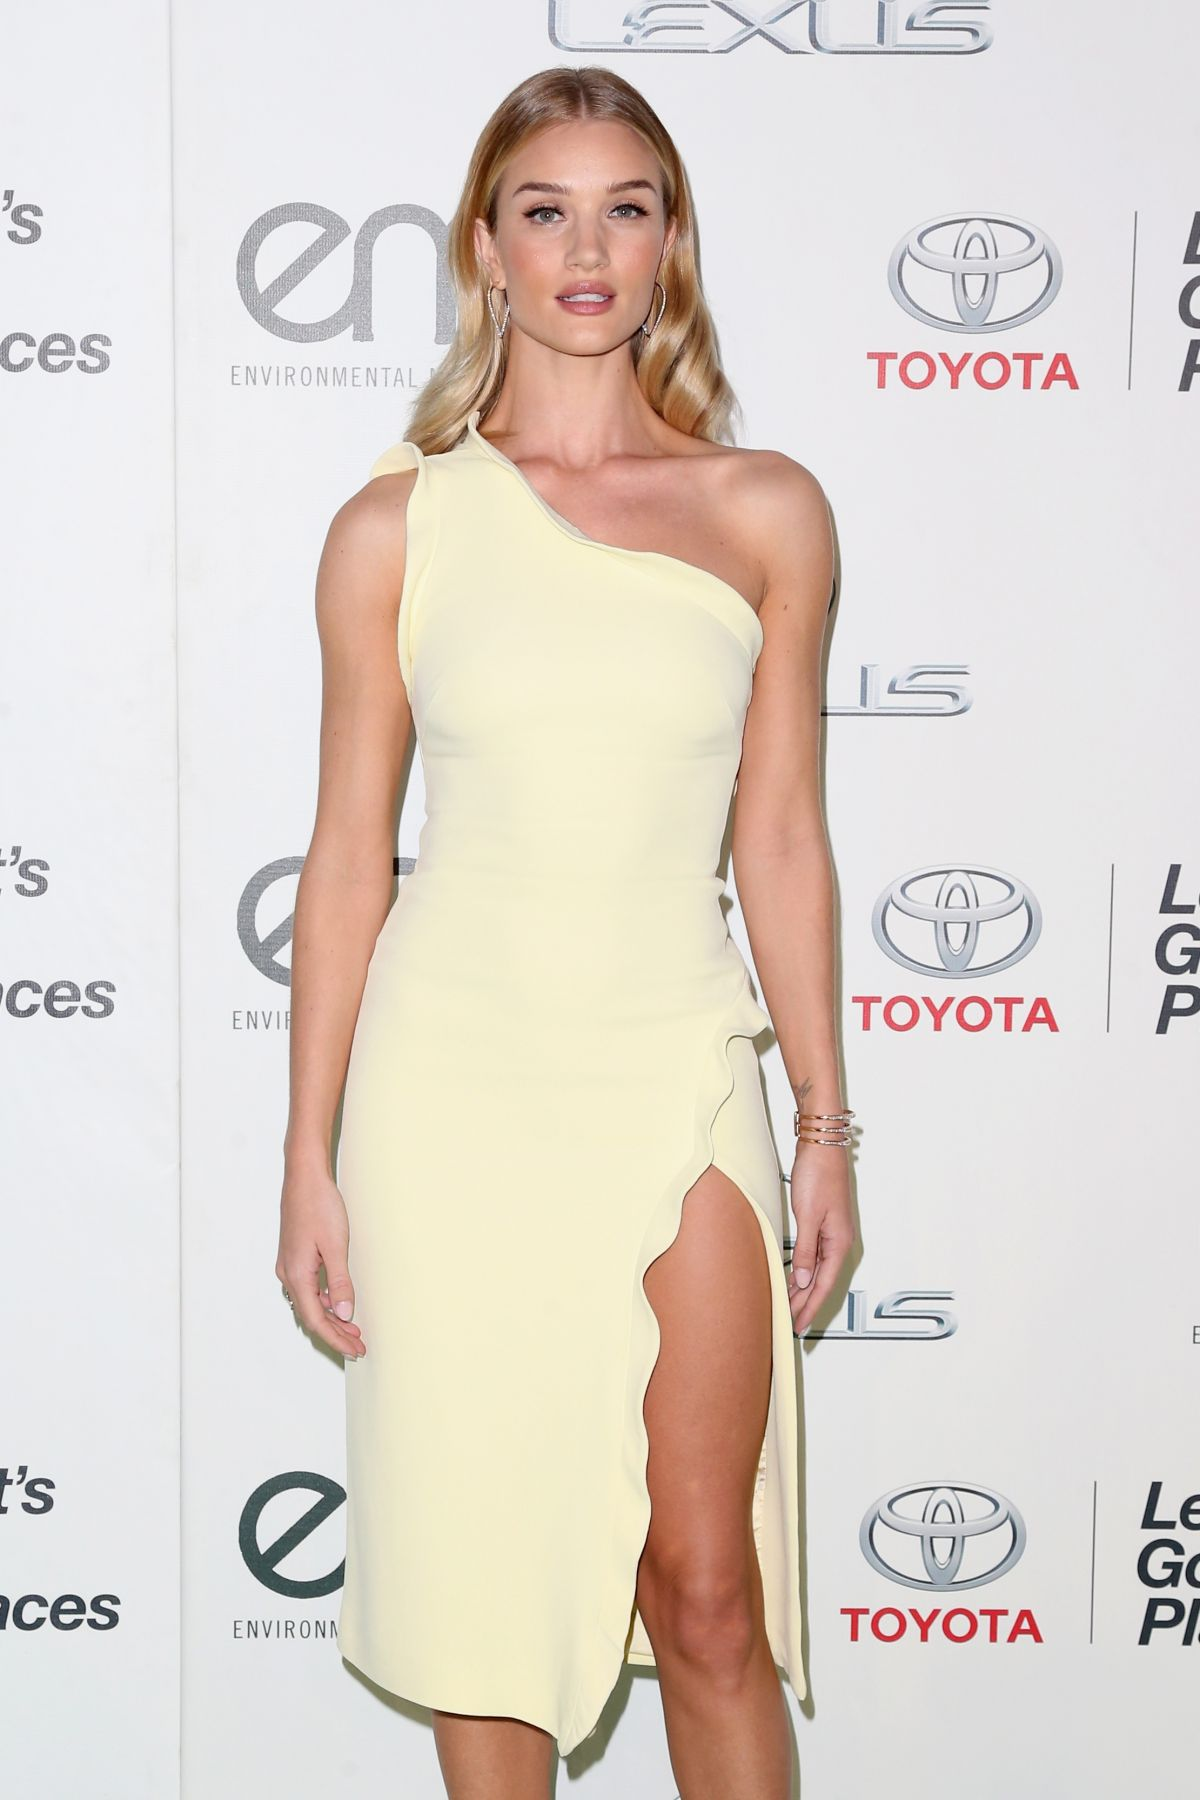 ROSIE HUNTINGTON-WHITELEY at 2015 EMA Awards in Burbank 10/24/2015